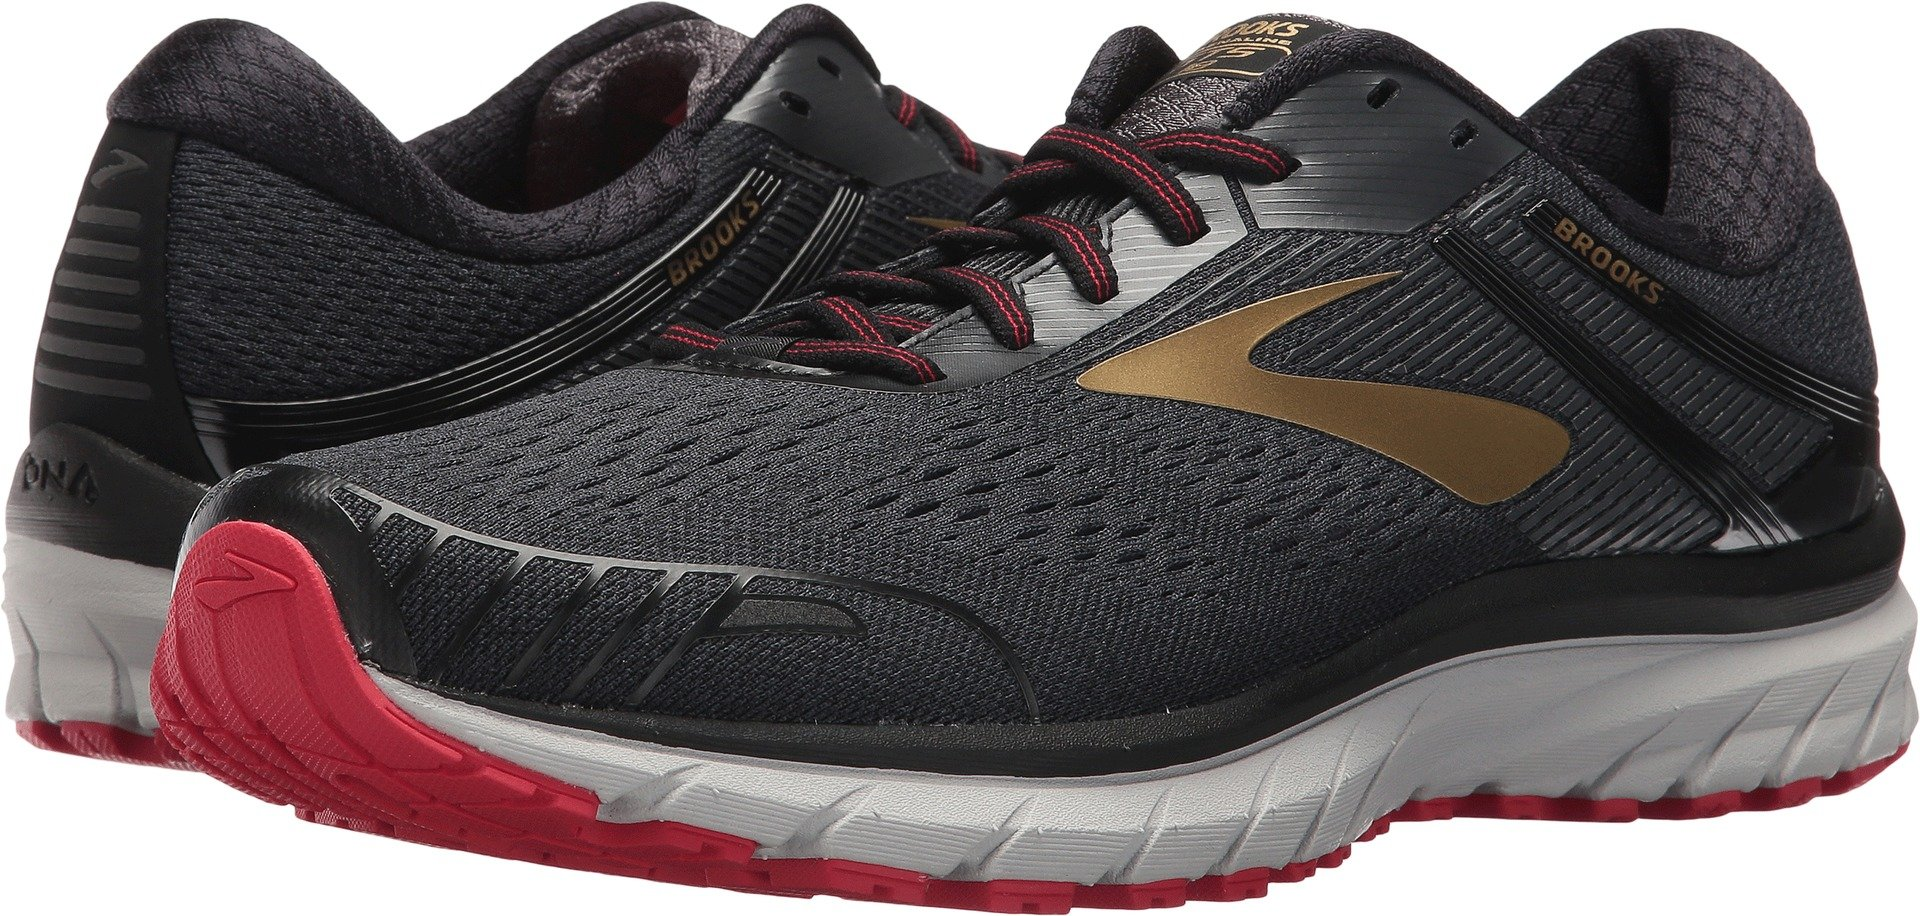 1572cff578e Galleon - Brooks Men s Adrenaline GTS 18 Black Gold Red 9.5 D US